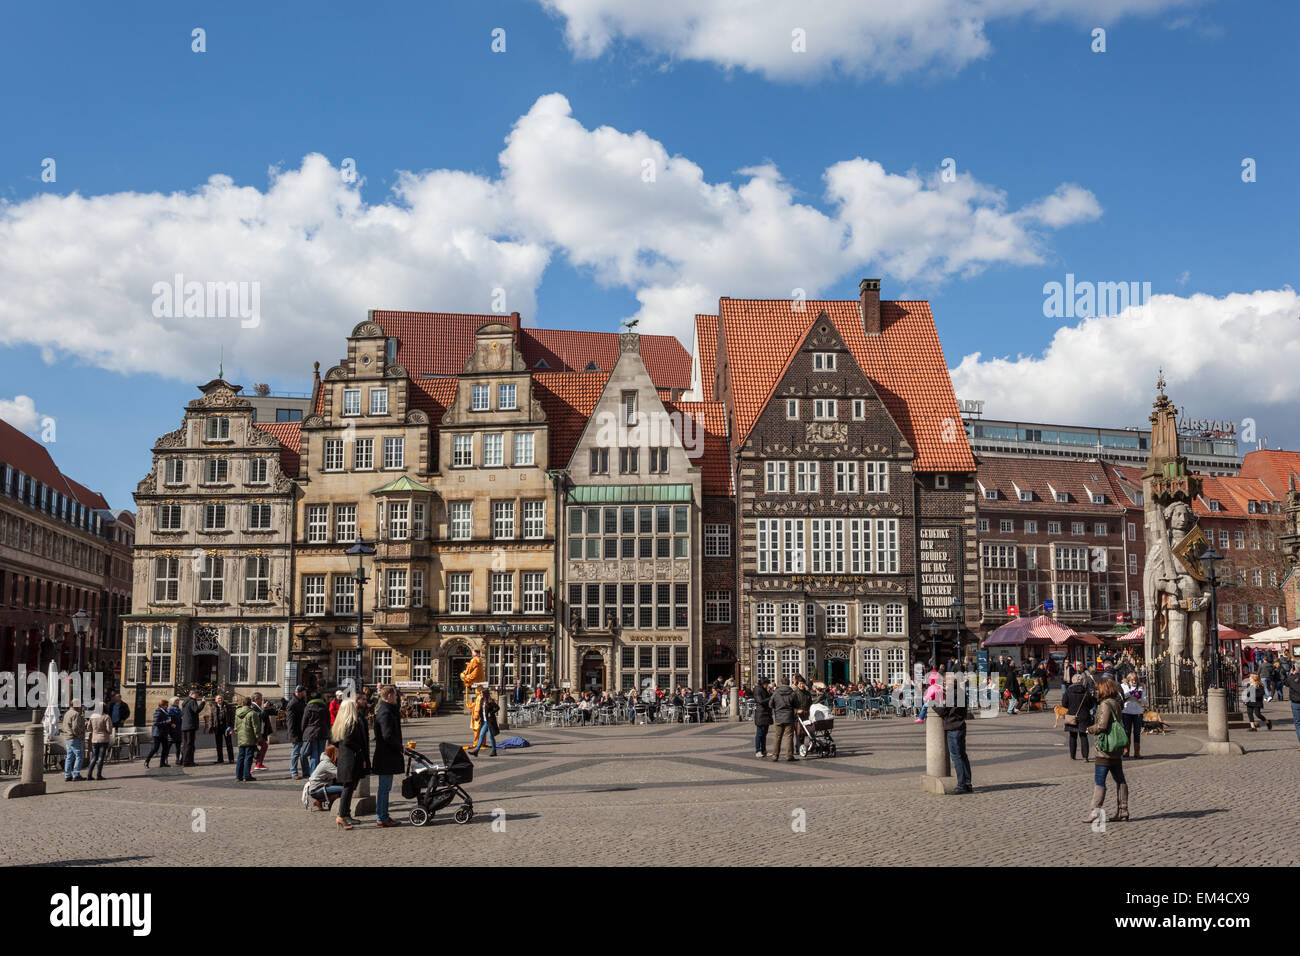 Main square in the old town of Bremen, Germany - Stock Image